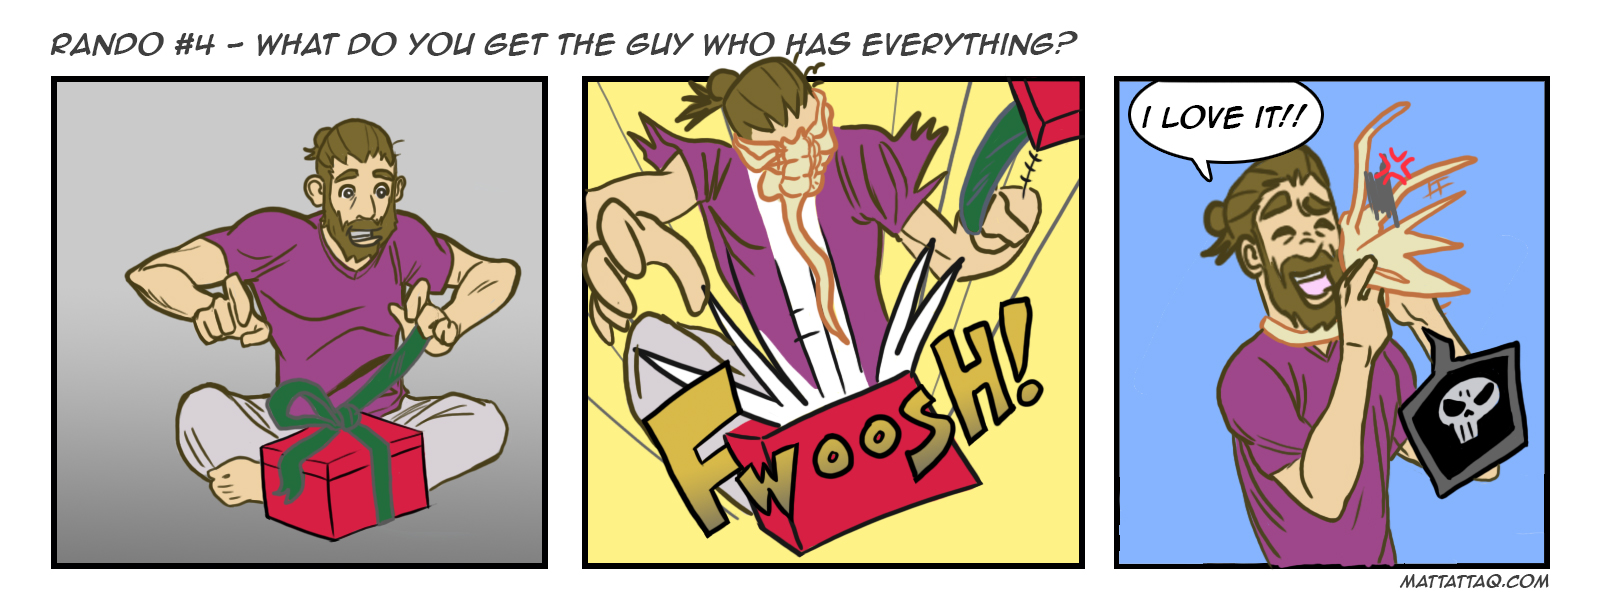 Rando 04 - What do you get the guy who has everything?